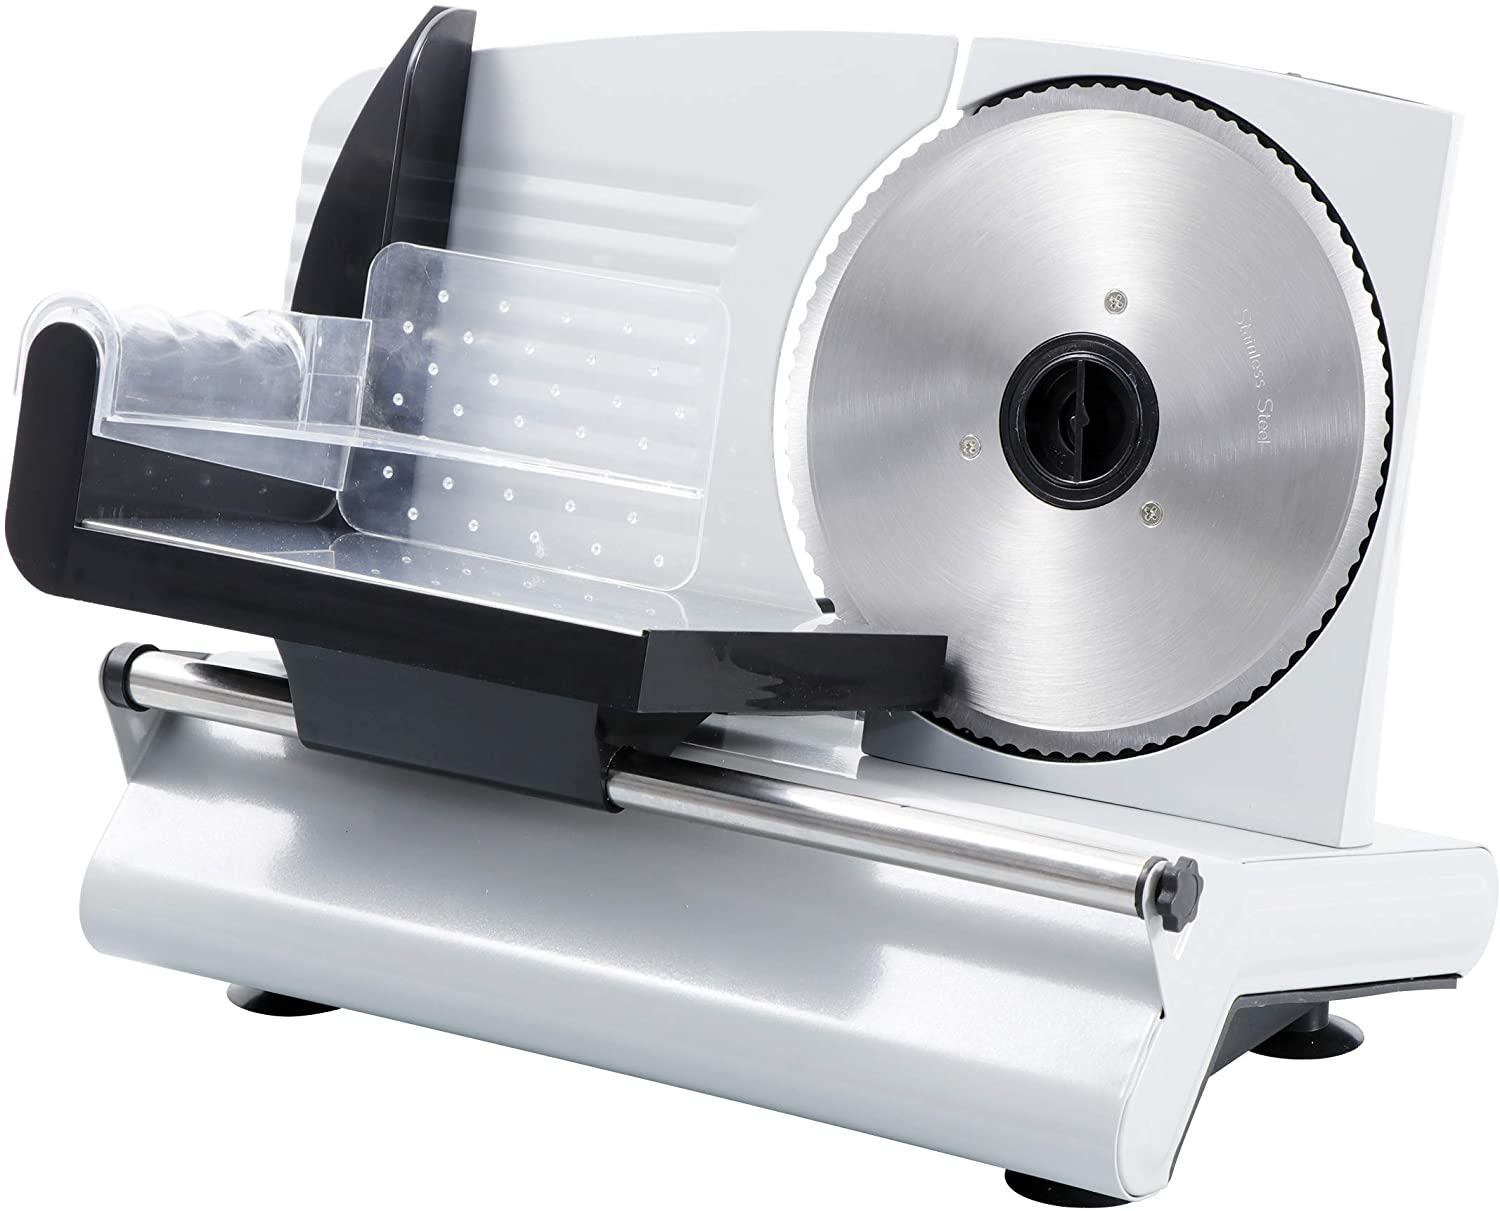 F2C Pro Commercial/Home Kitchen Electric Food Slicer